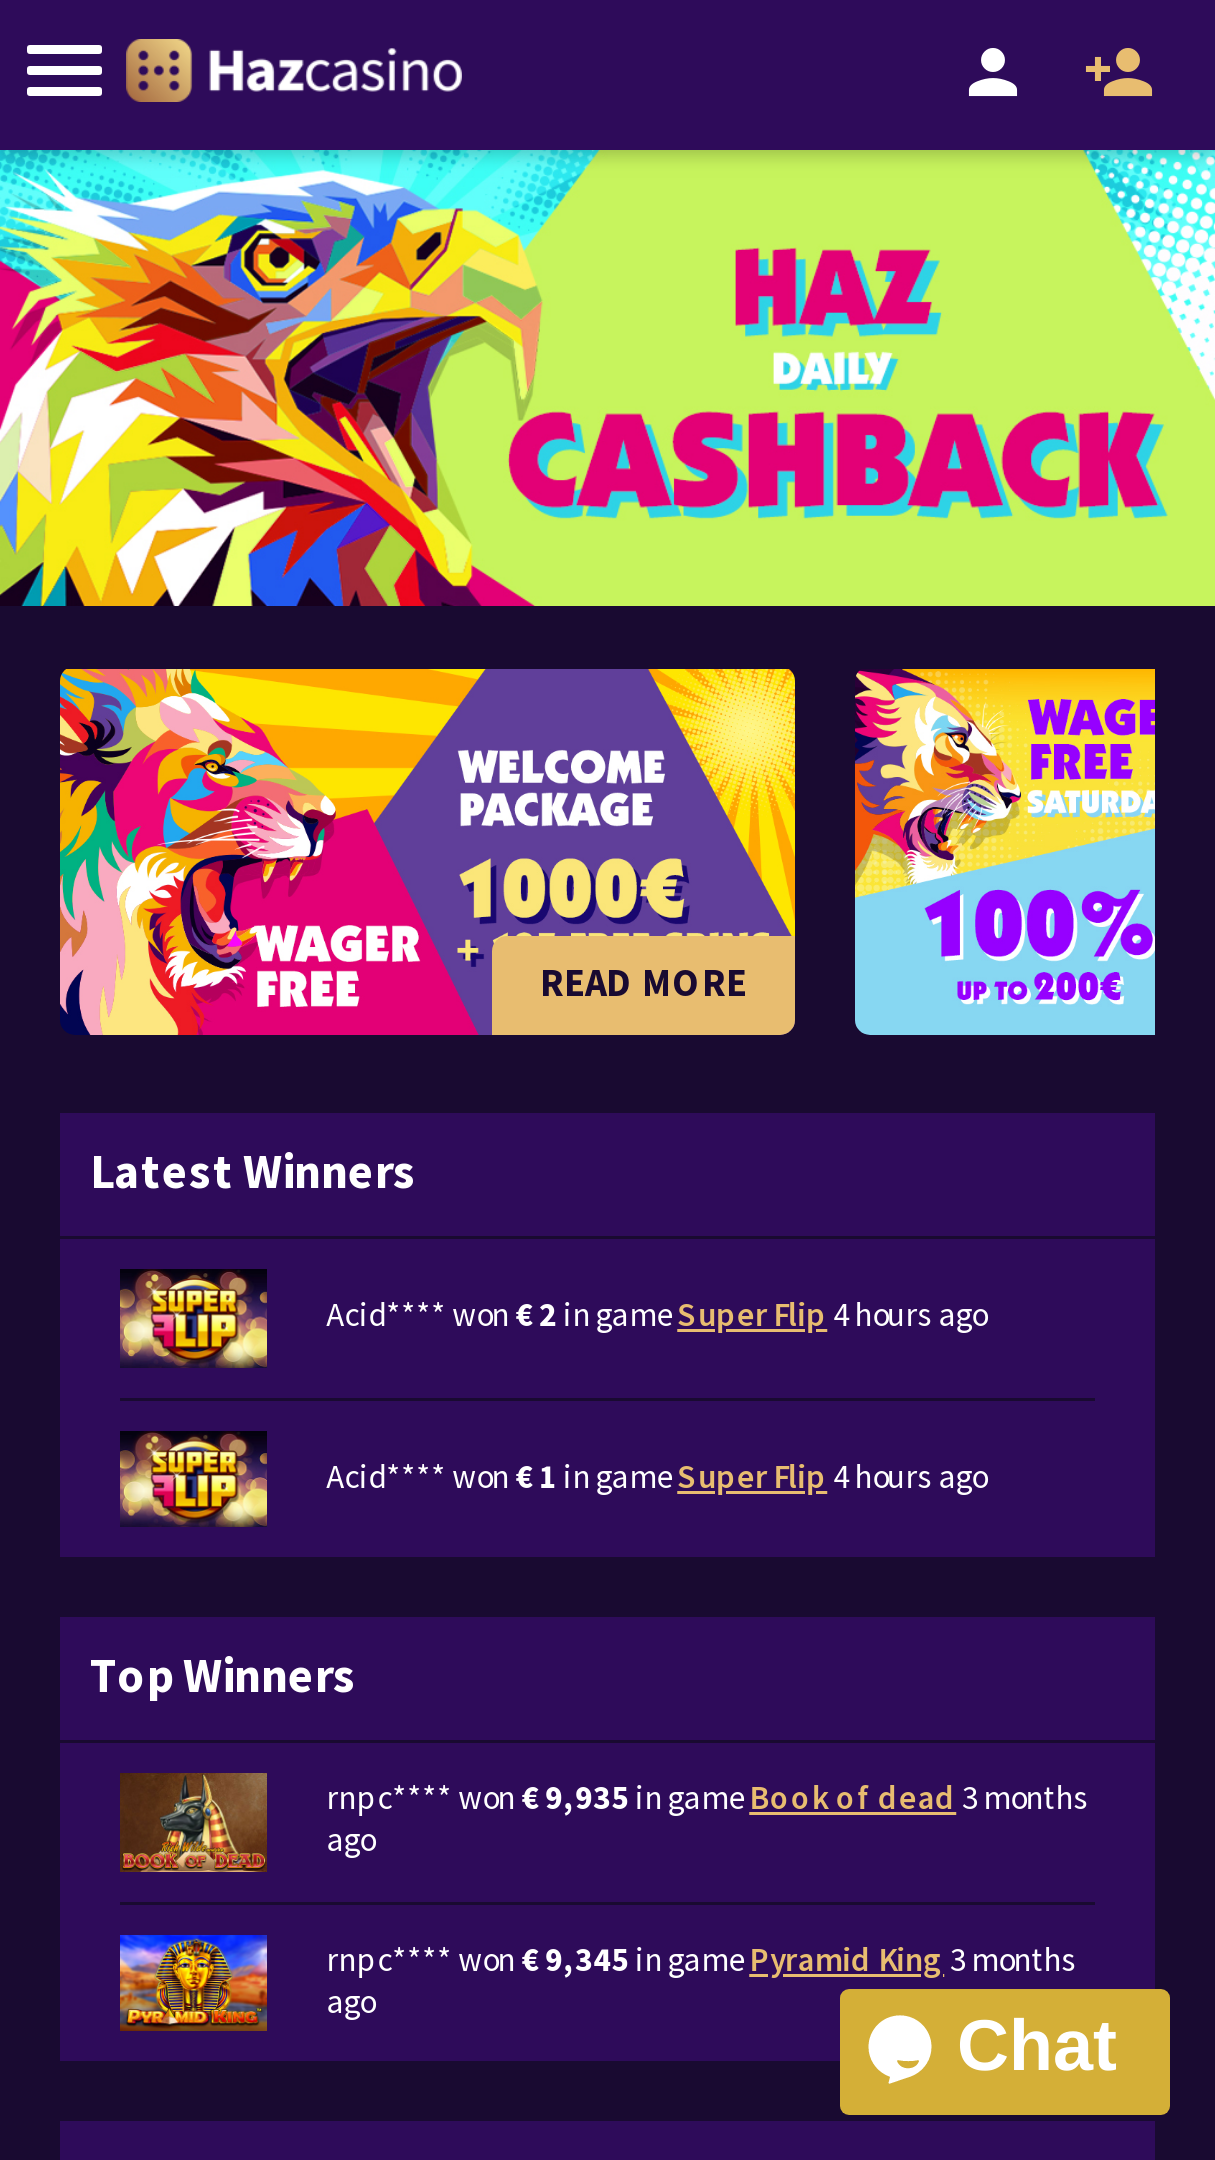 One-minute registration and simple sign-up process; Wide selection of games from the top software providers of ; Caxino Casino Bonus Caxino Casino Bonus: A % deposit bonus up to $ plus Free Spins.All new casino players can receive Free Spins for $10! You'll receive free spins on ten different slot games/5.